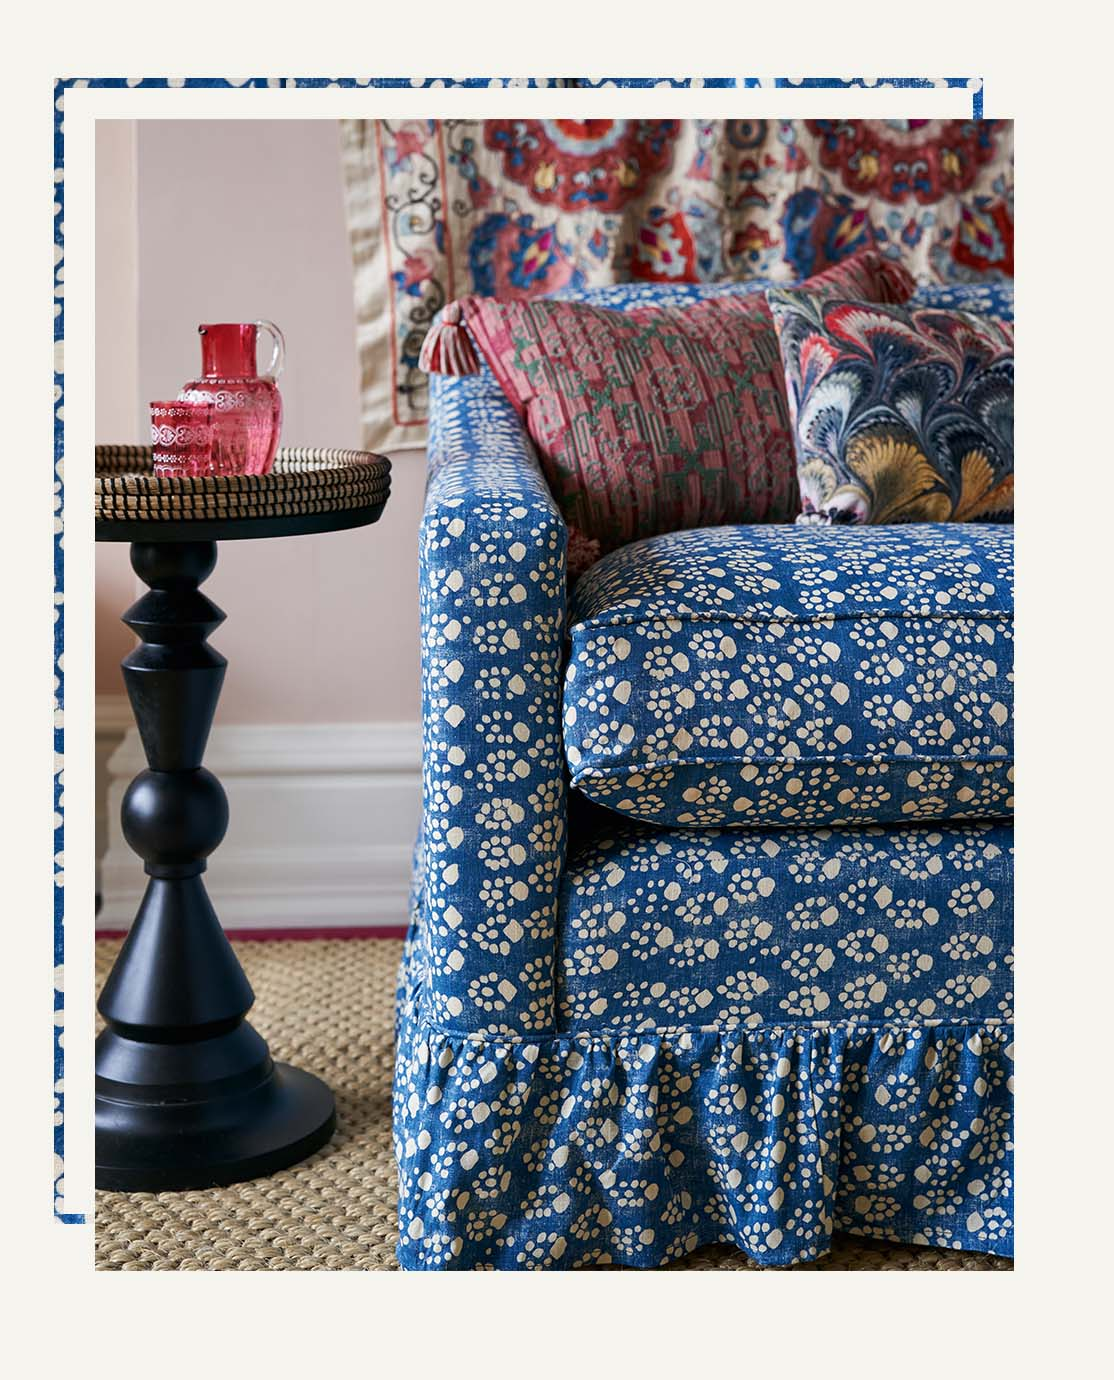 A corner of Jessica Buckley's bespoke sofa, featuring a blue paw-print pattern